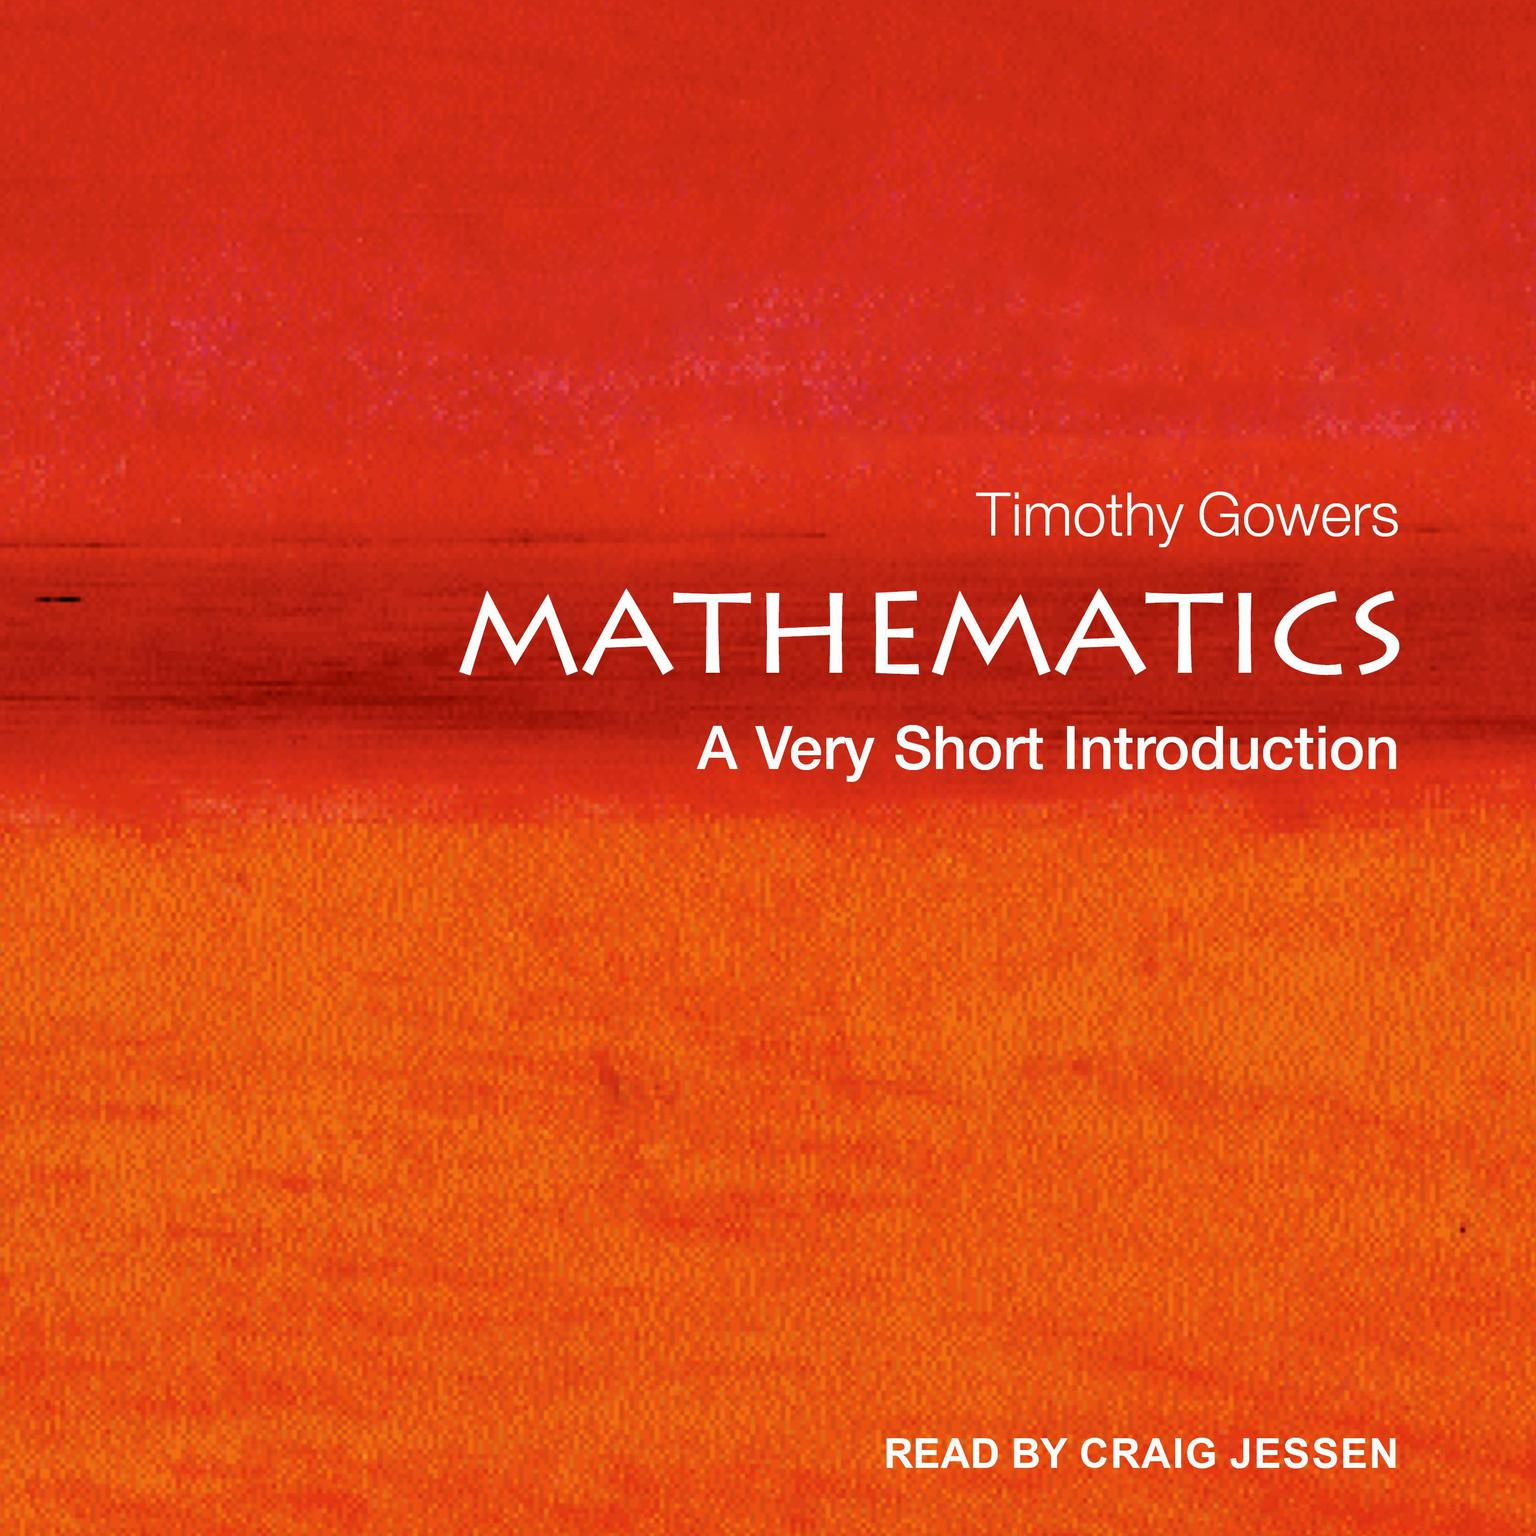 Mathematics: A Very Short Introduction Audiobook, by Timothy Gowers